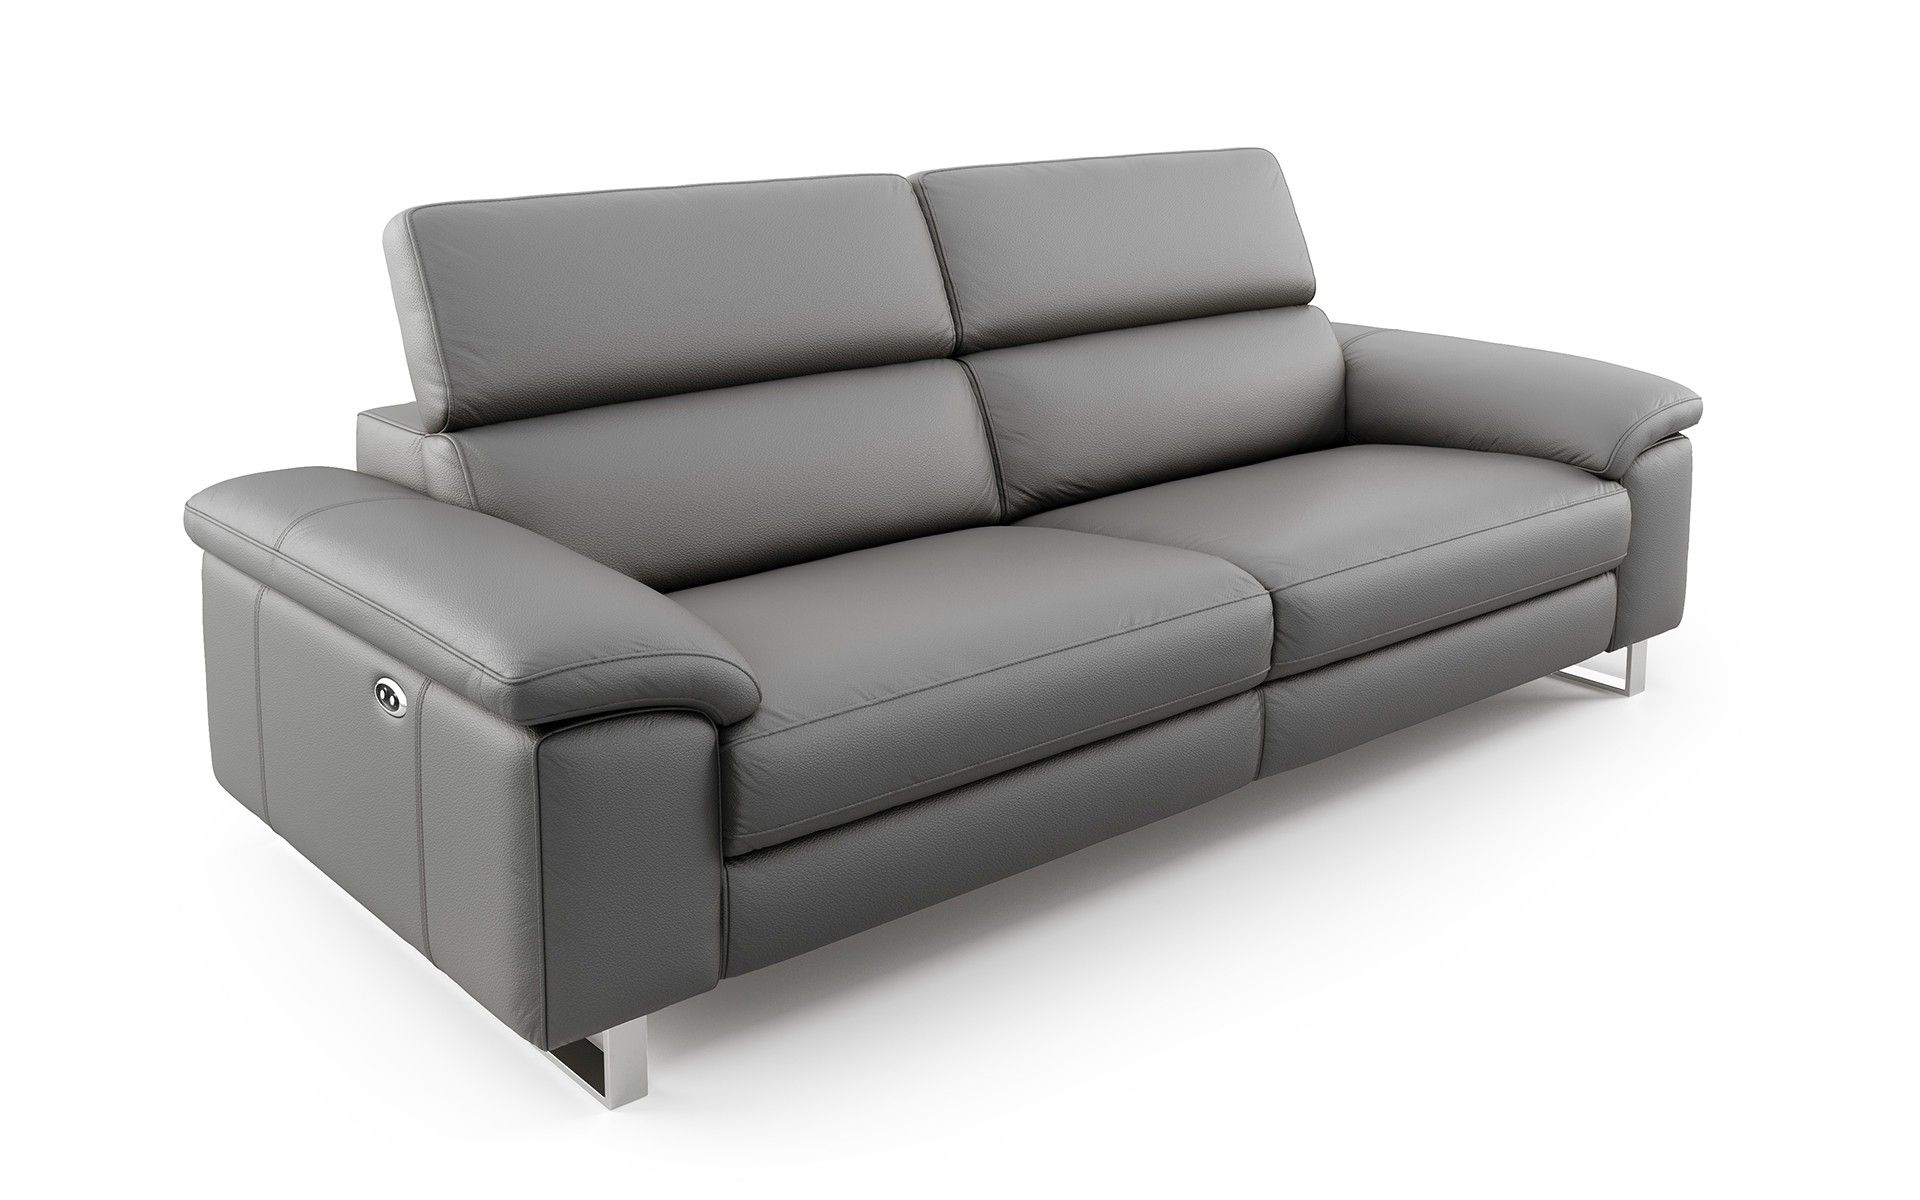 Savona 3 Sitzer Ledersofa With Images Sofa Couch Furniture